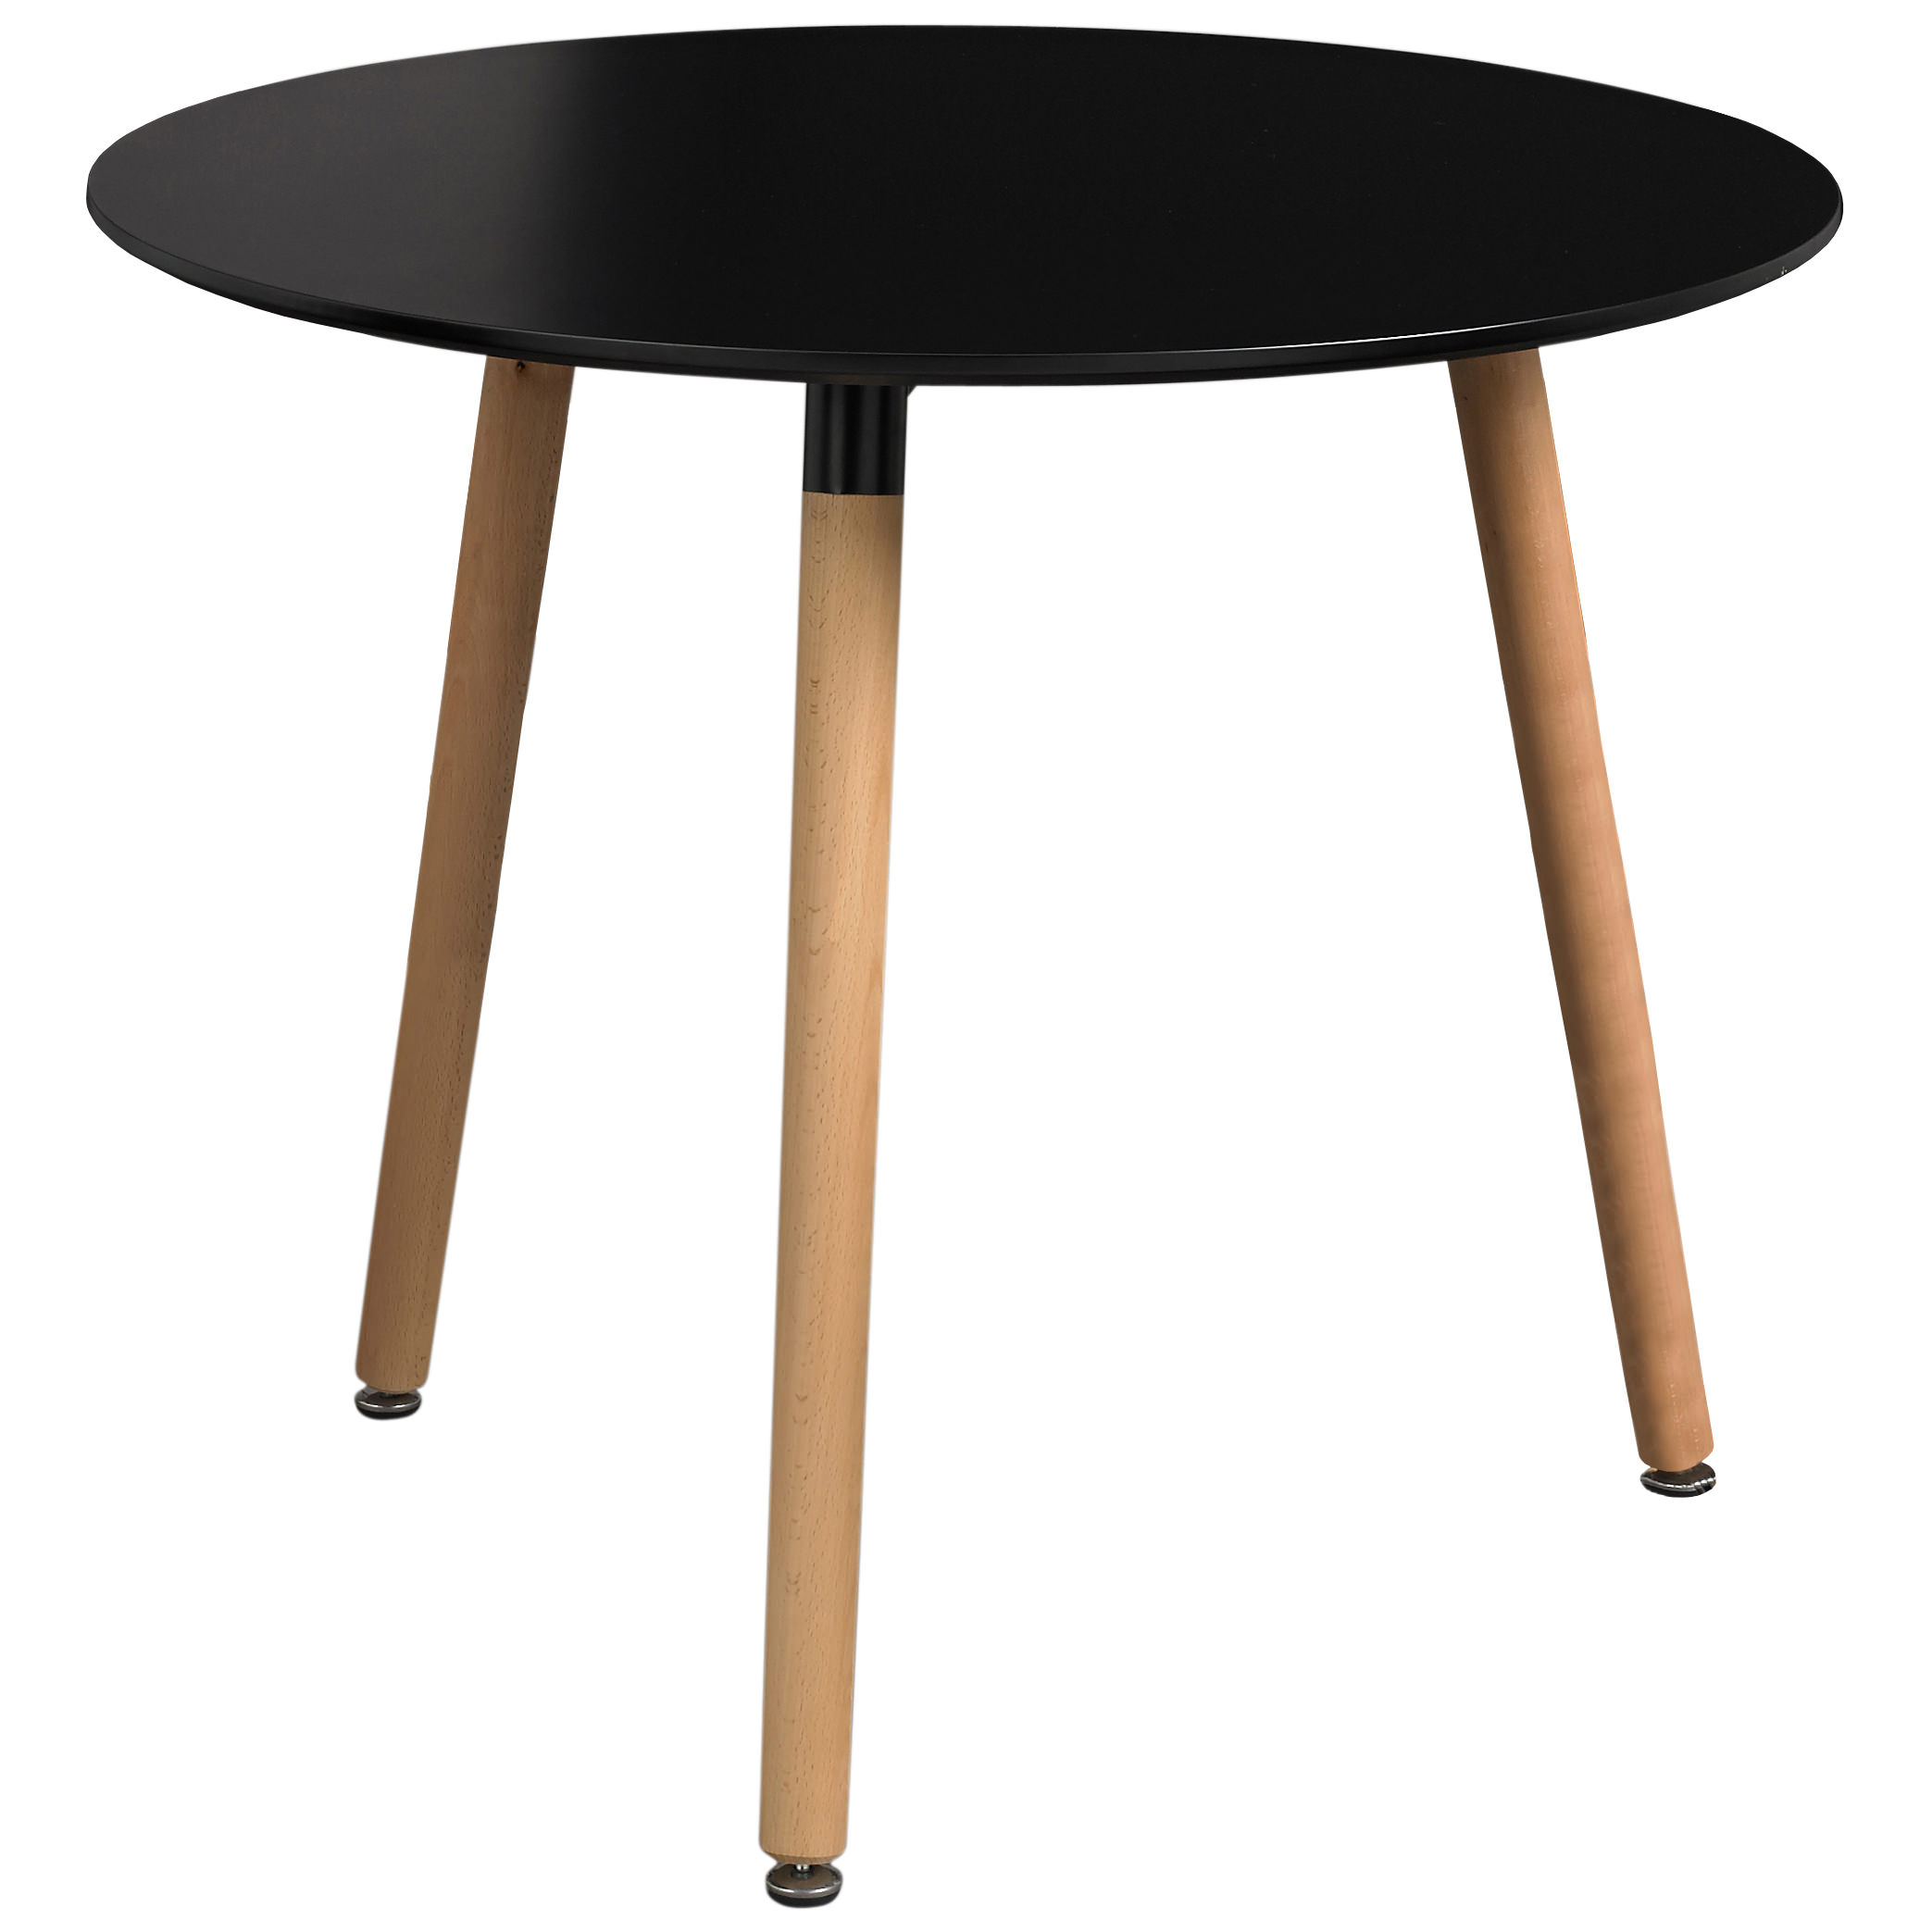 Painted finish round dining table black white ebay for Black dining table